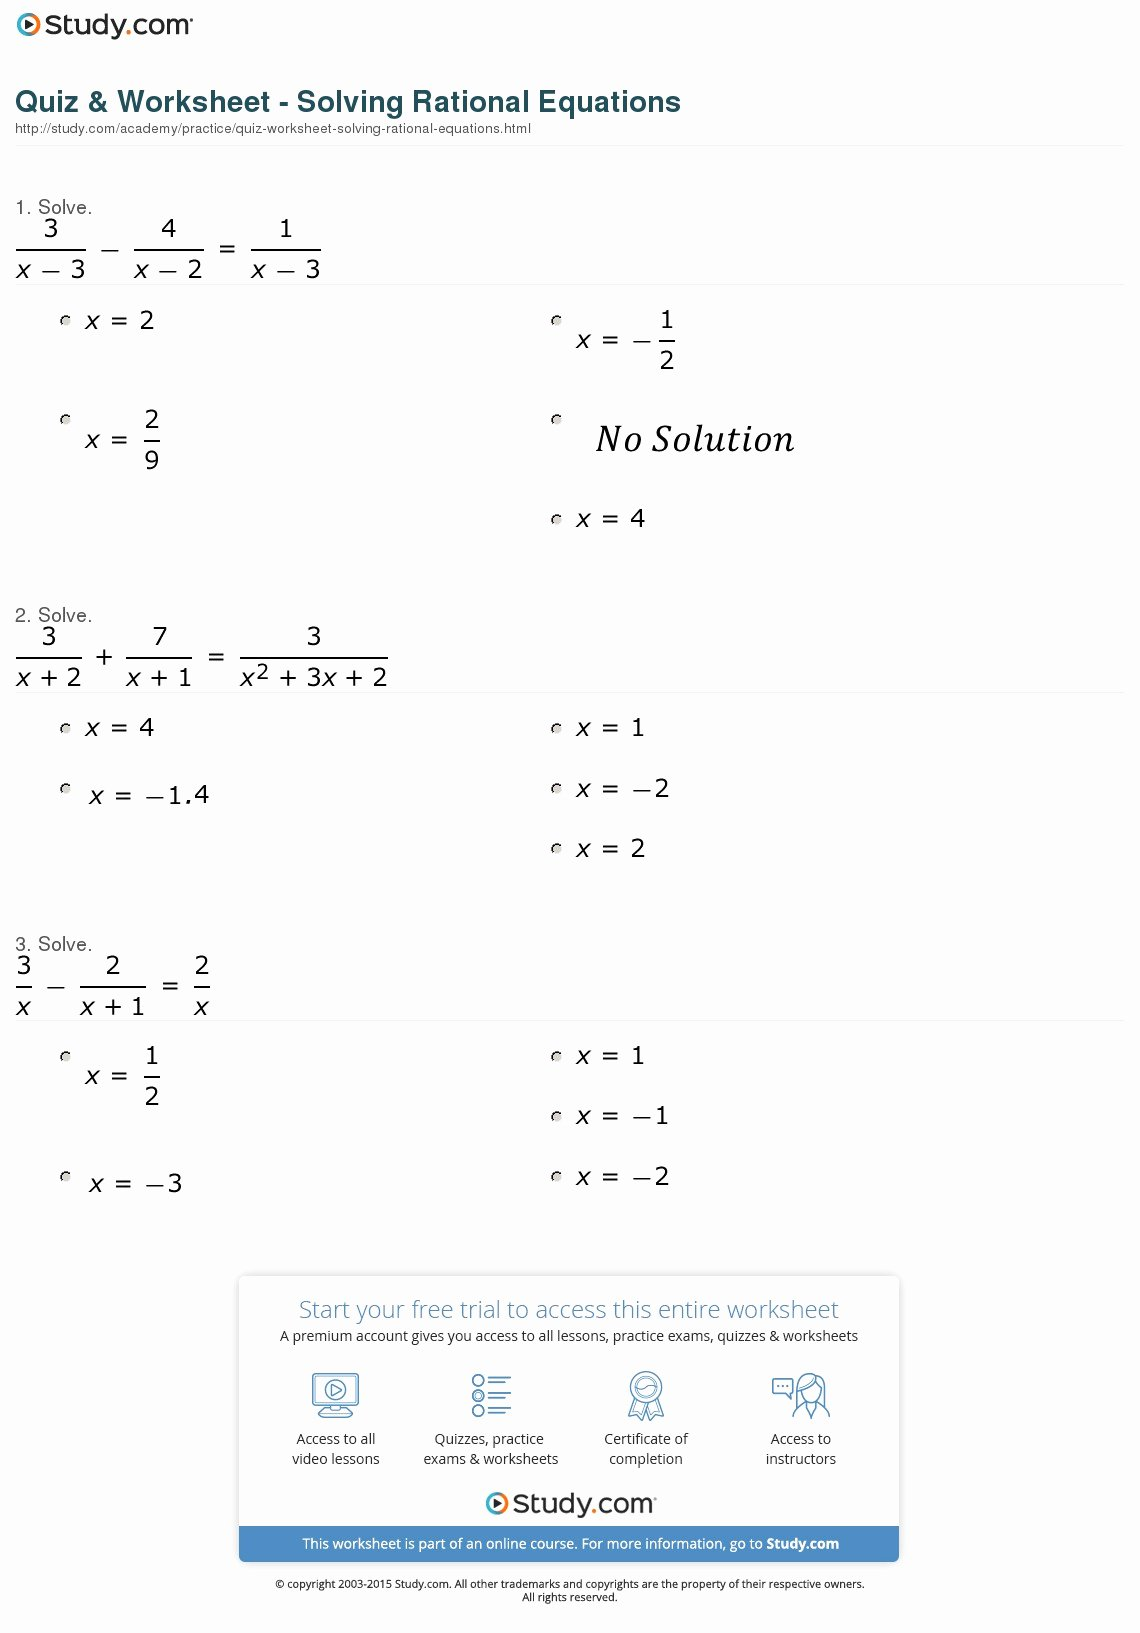 Solving Rational Inequalities Worksheet Beautiful Quiz & Worksheet solving Rational Equations